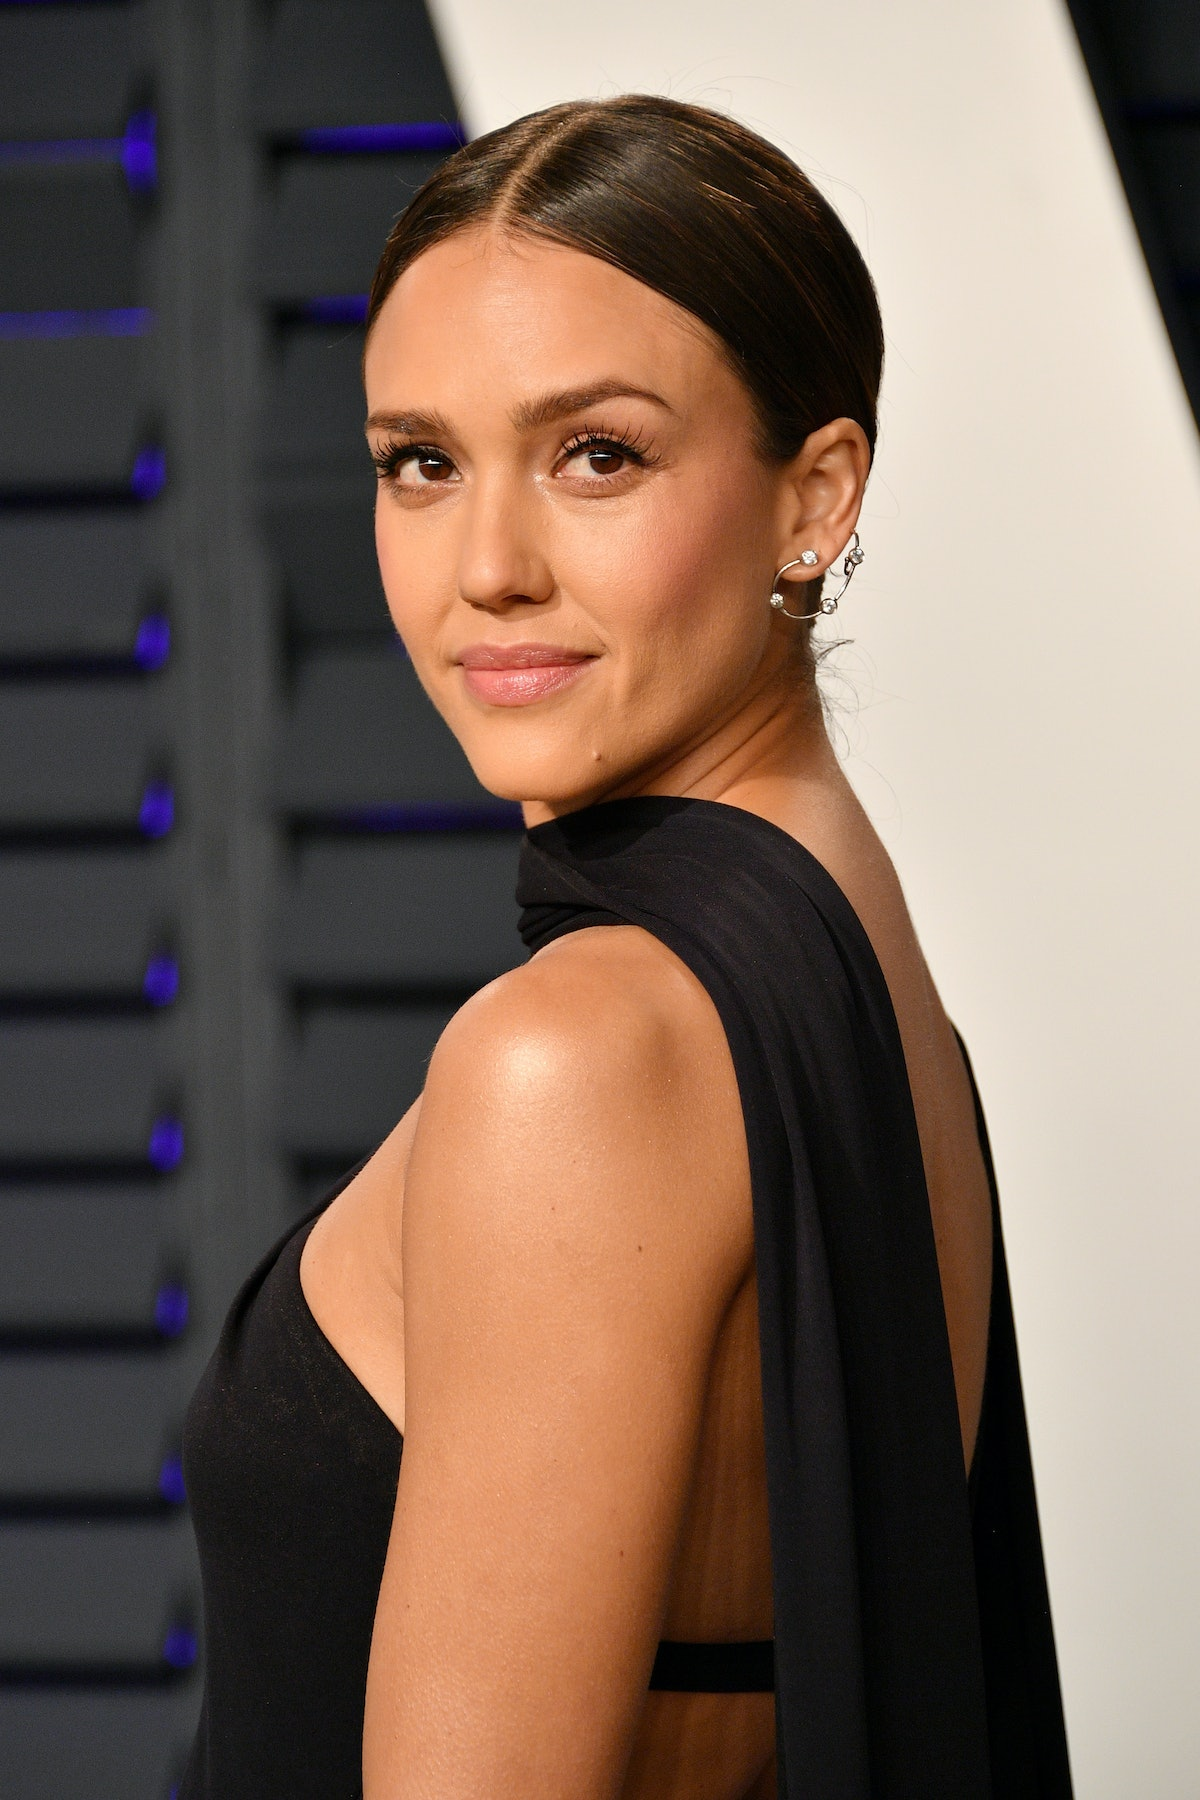 Jessica Alba's New Tattoos Have Super Sweet Meanings